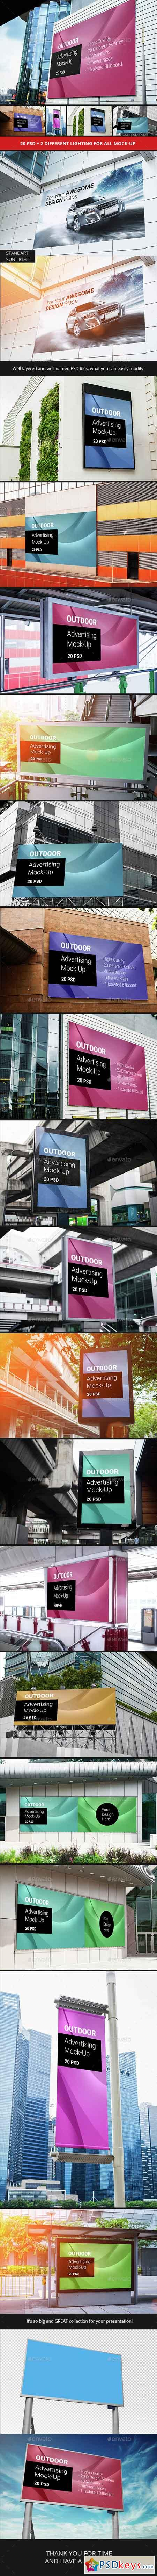 Billboard Outdoor Advertising Mock-Up 14495635